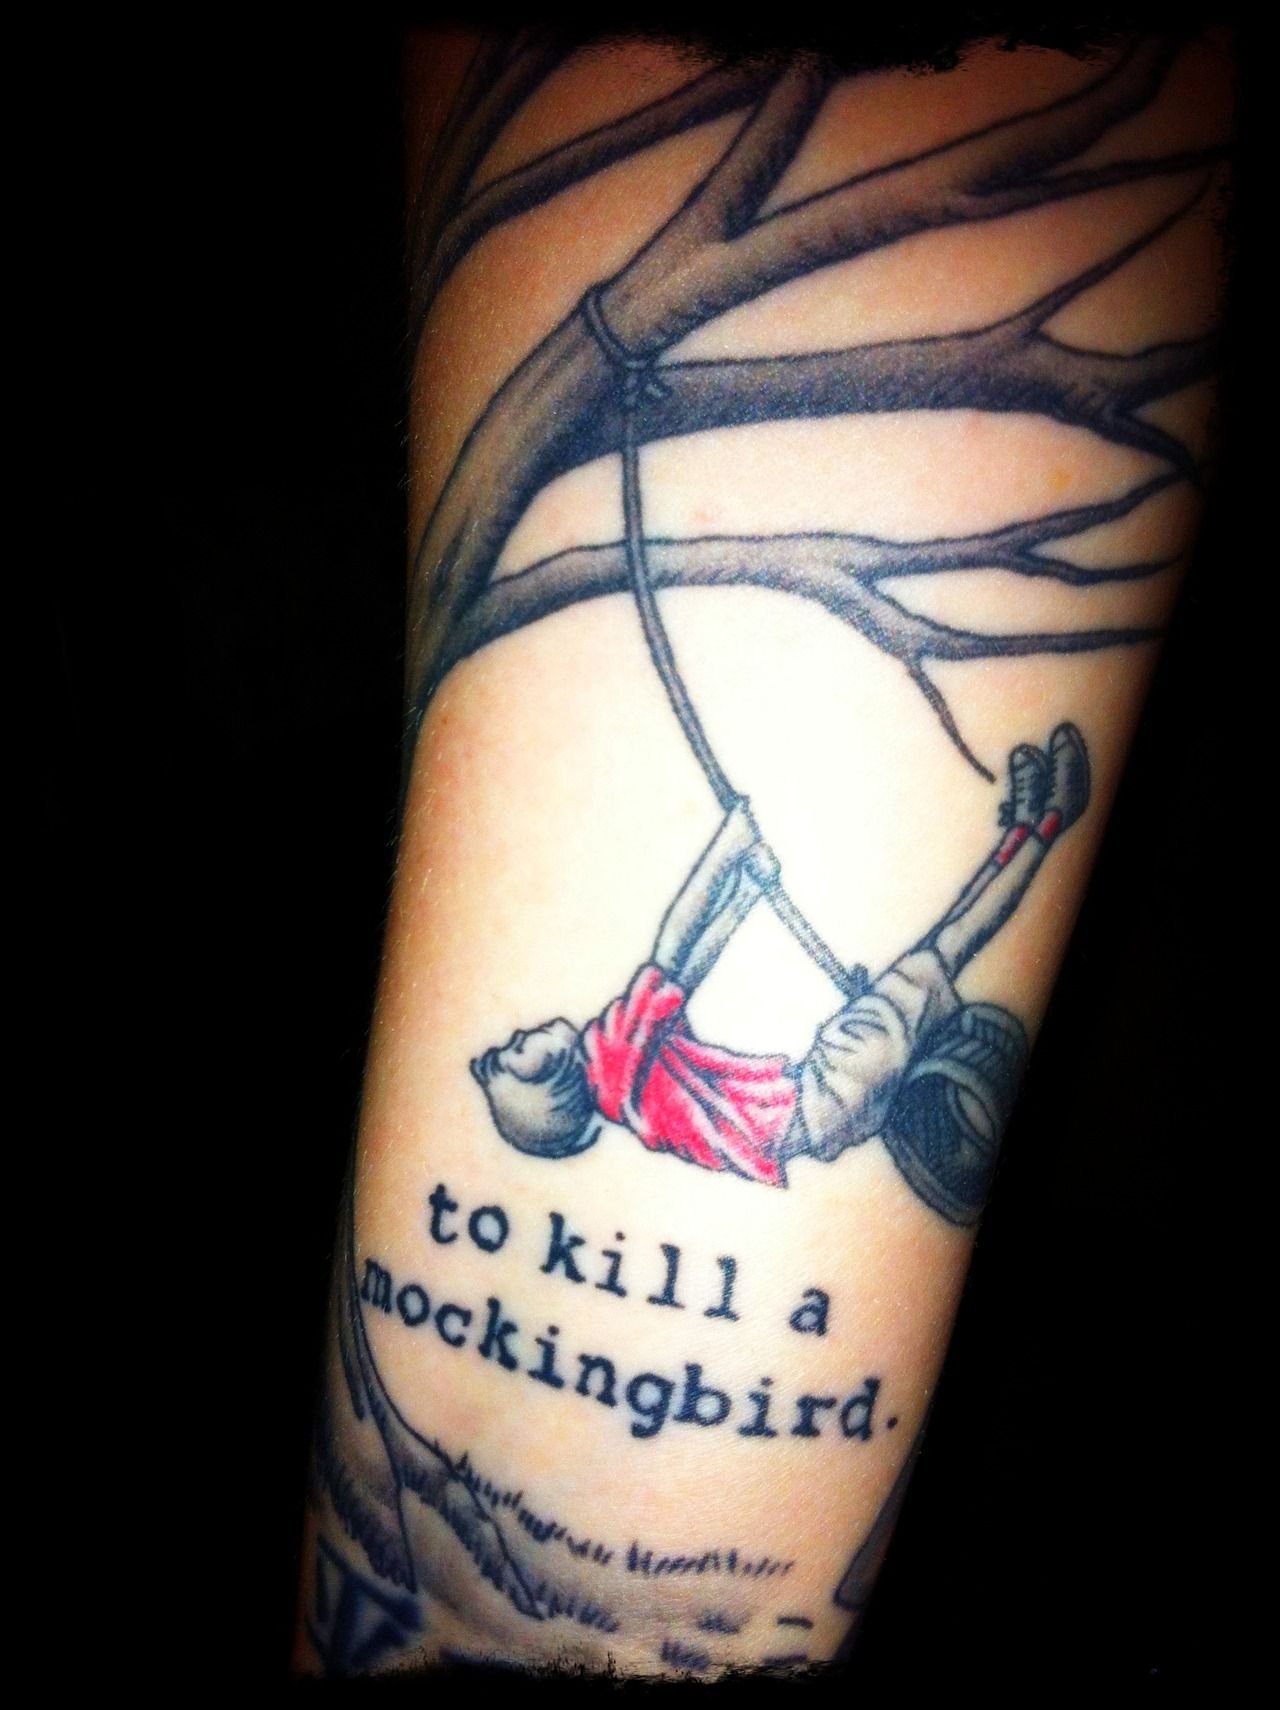 the word made flesh to kill a mockingbird tattoo wow ink heroines